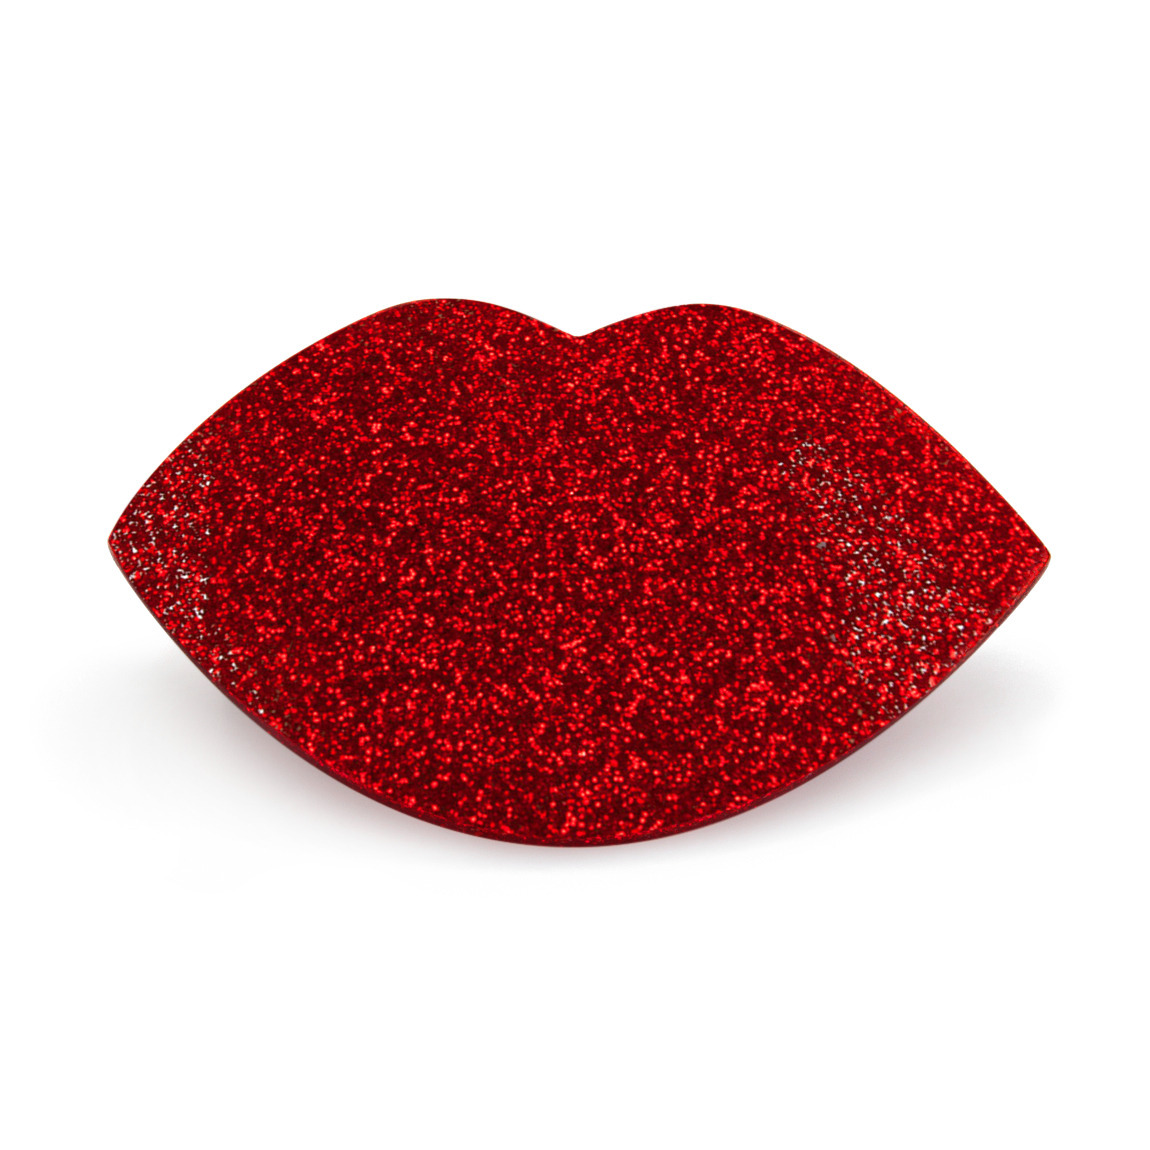 Paw Palette Regular Red Glitter Smooches product swatch.